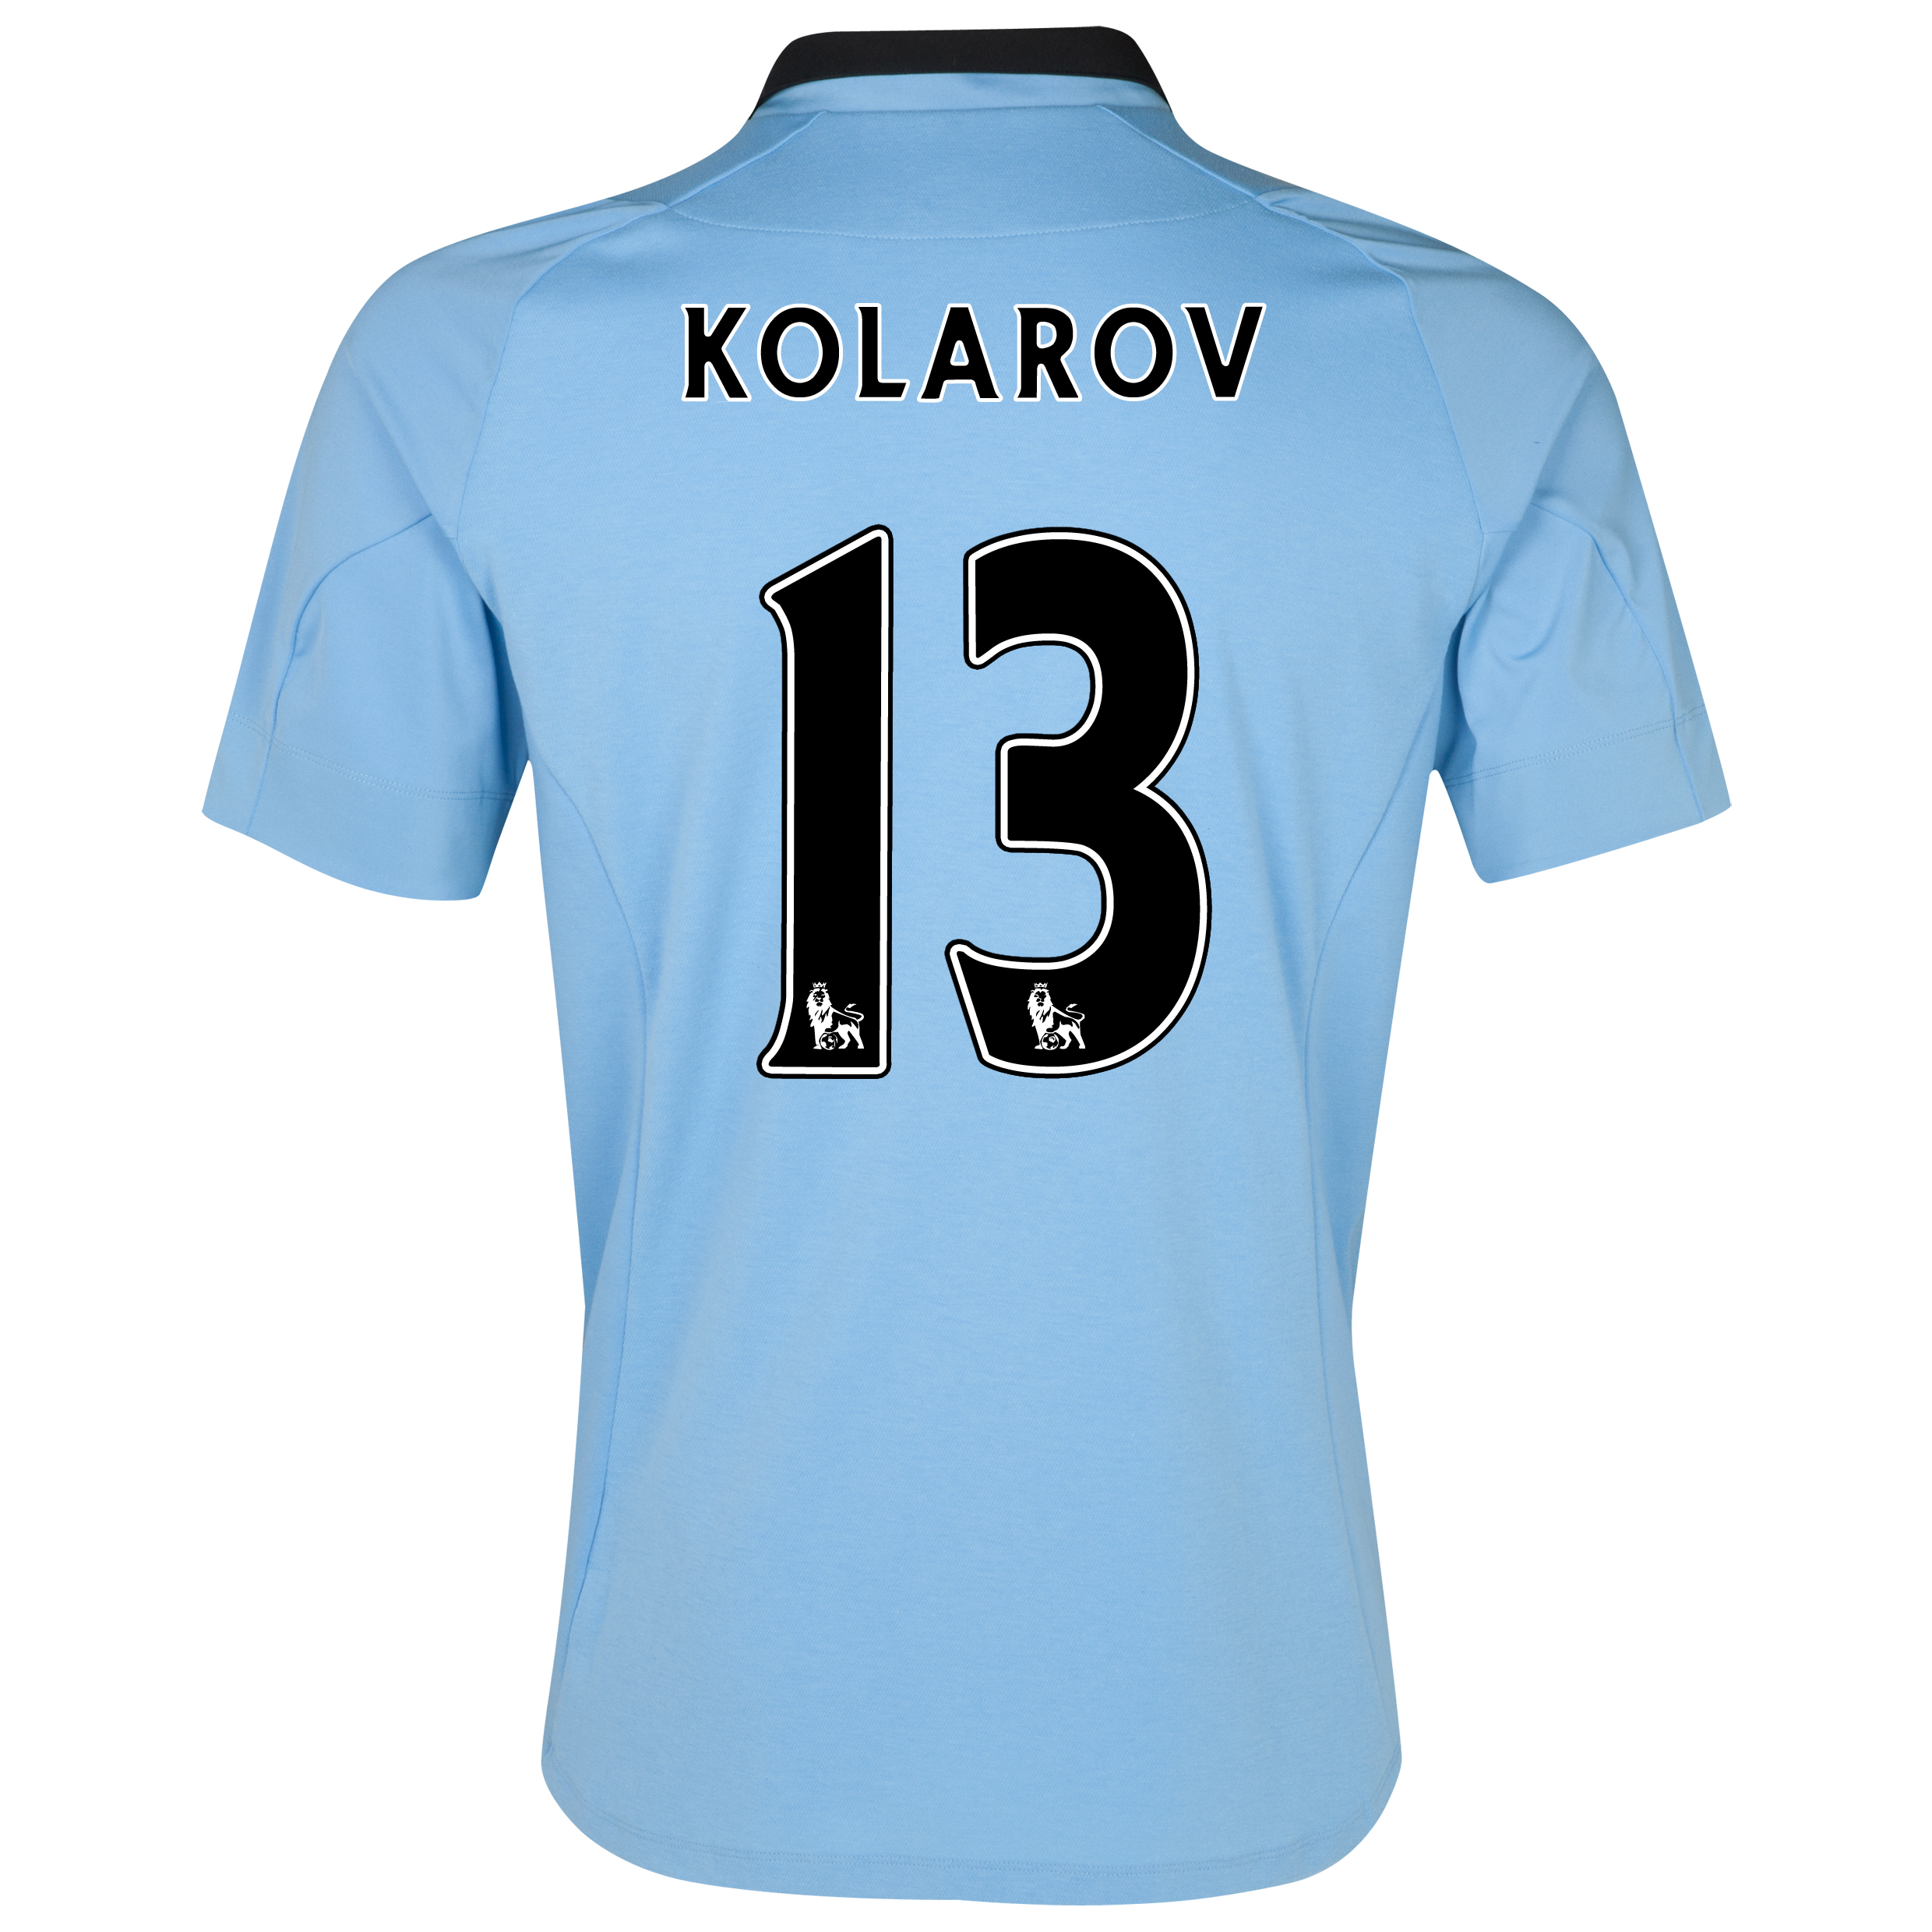 Manchester City Home Shirt 2012/13 with Kolarov 13 printing